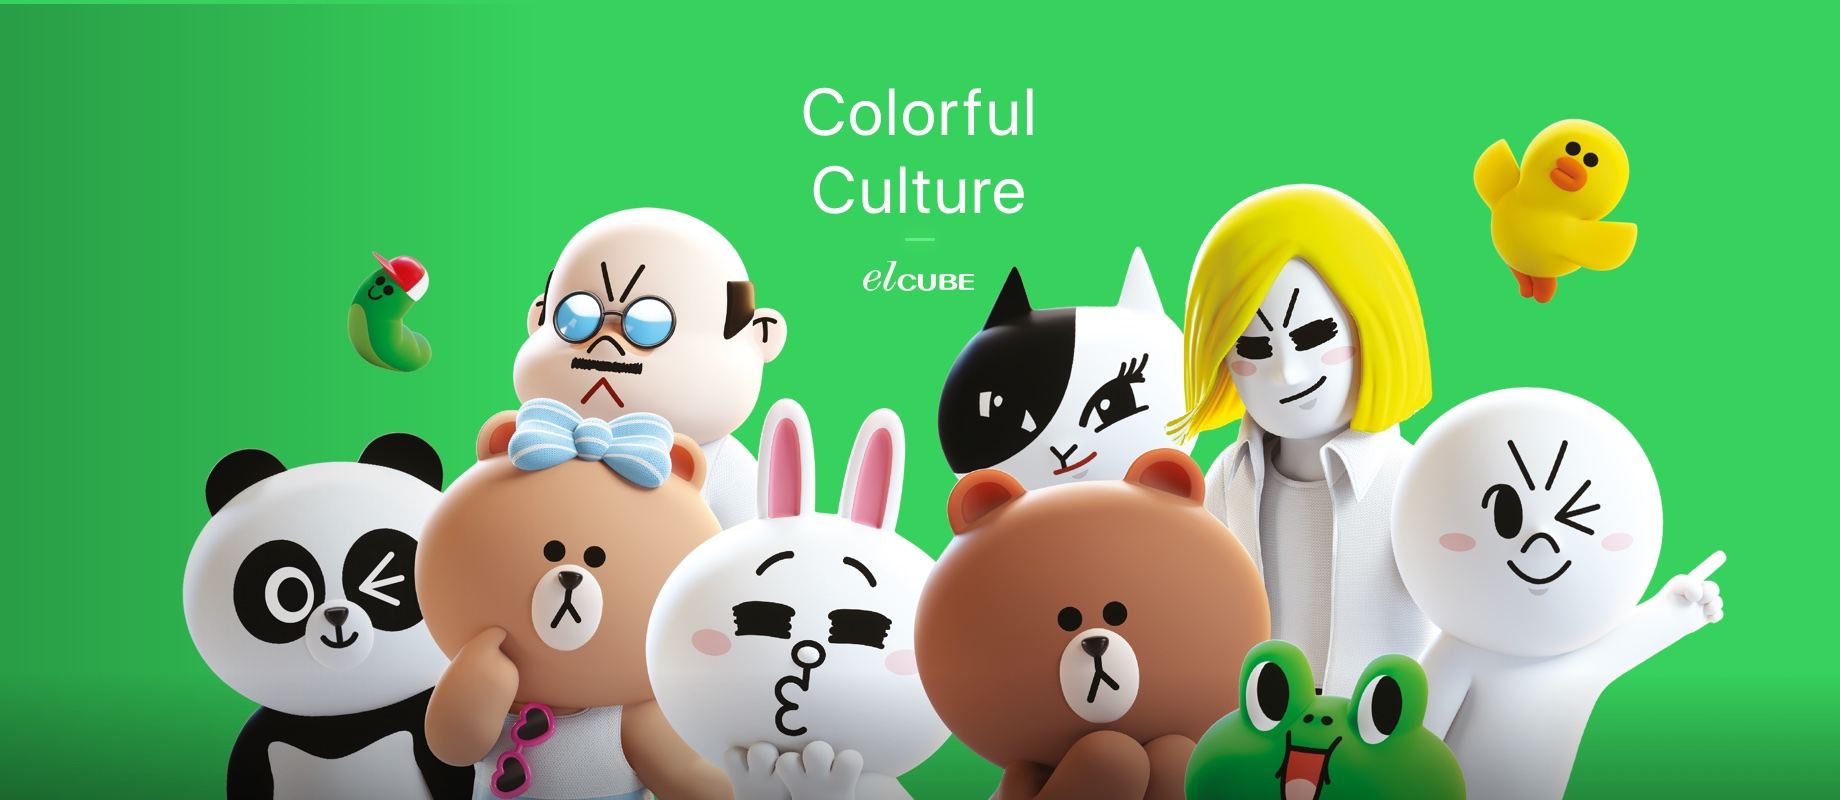 Colorful Culture elCUBE 라인프렌즈